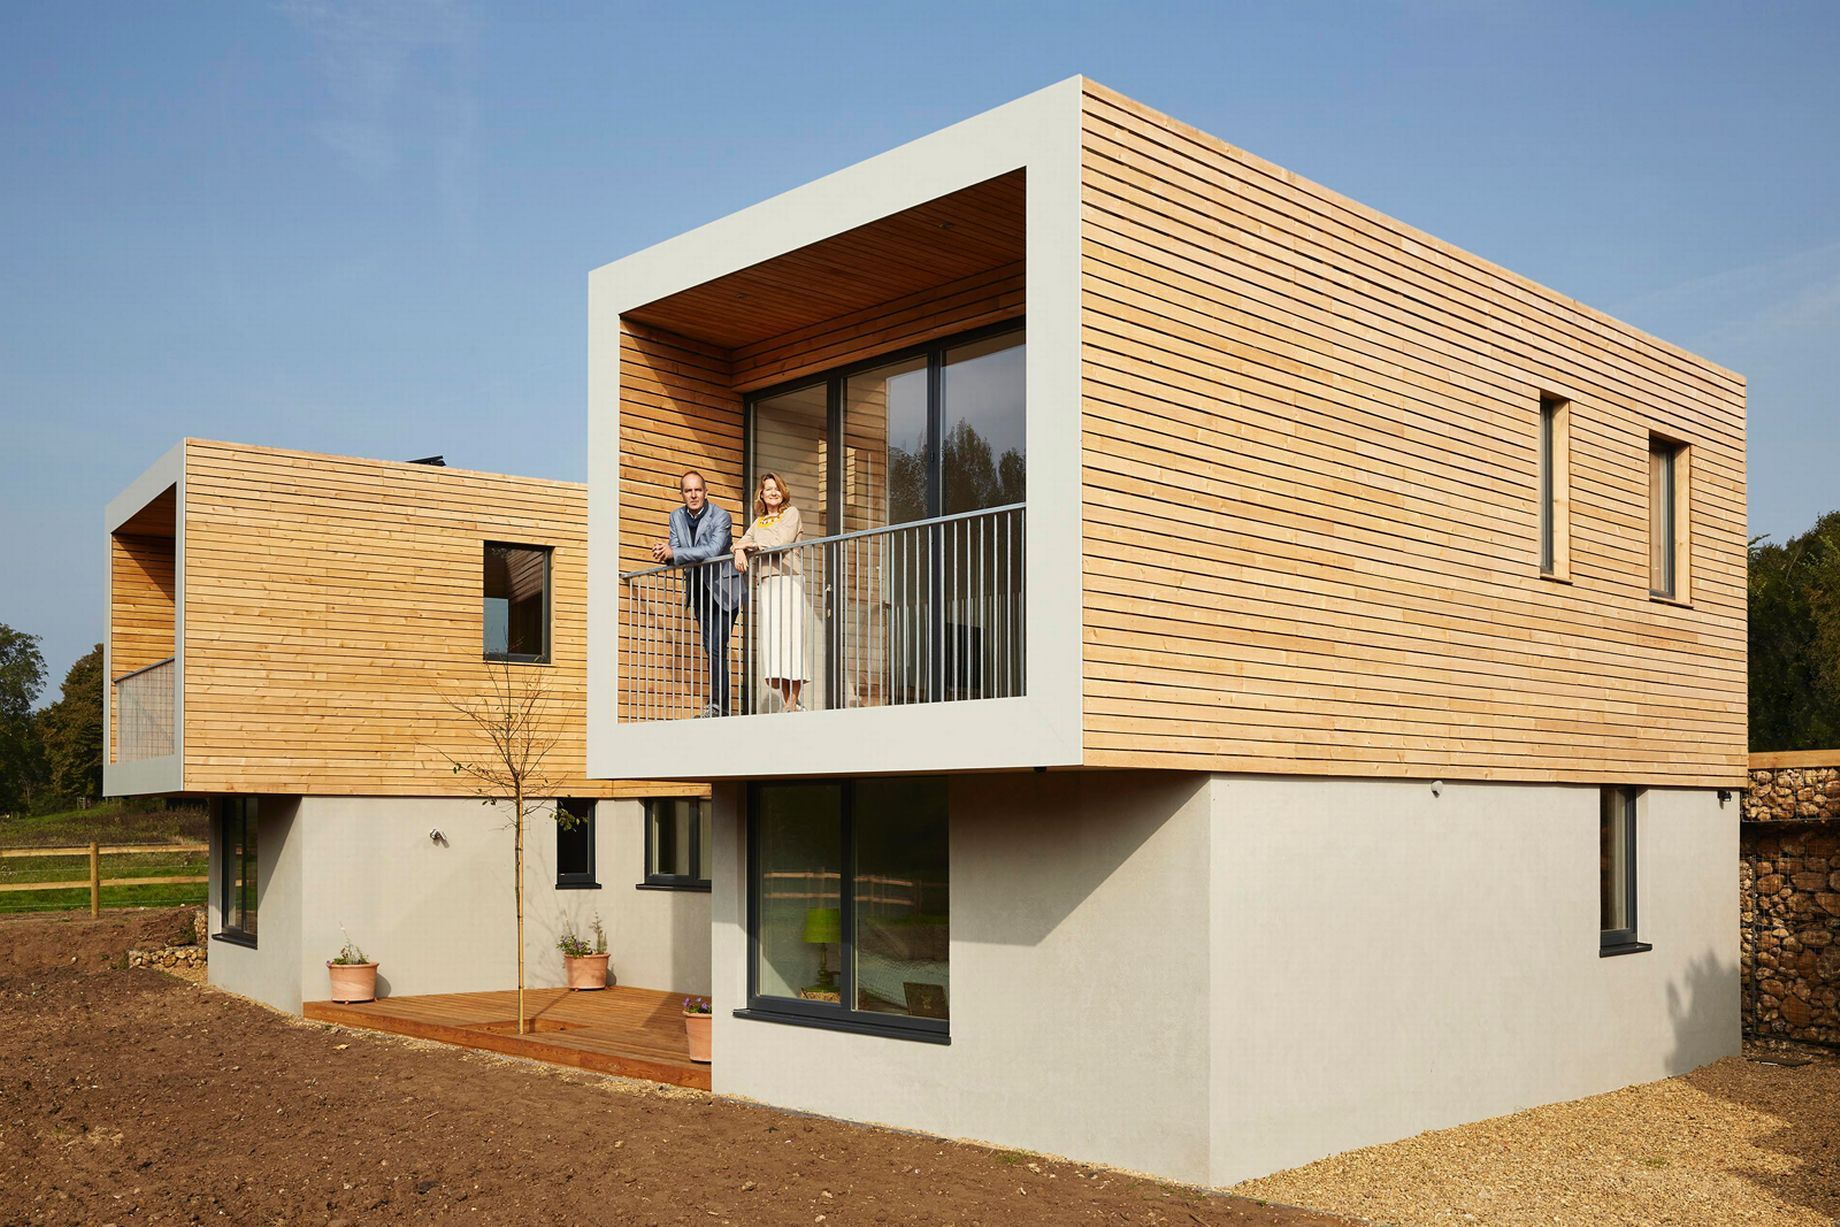 Grand Designs Eco House - Eco home design